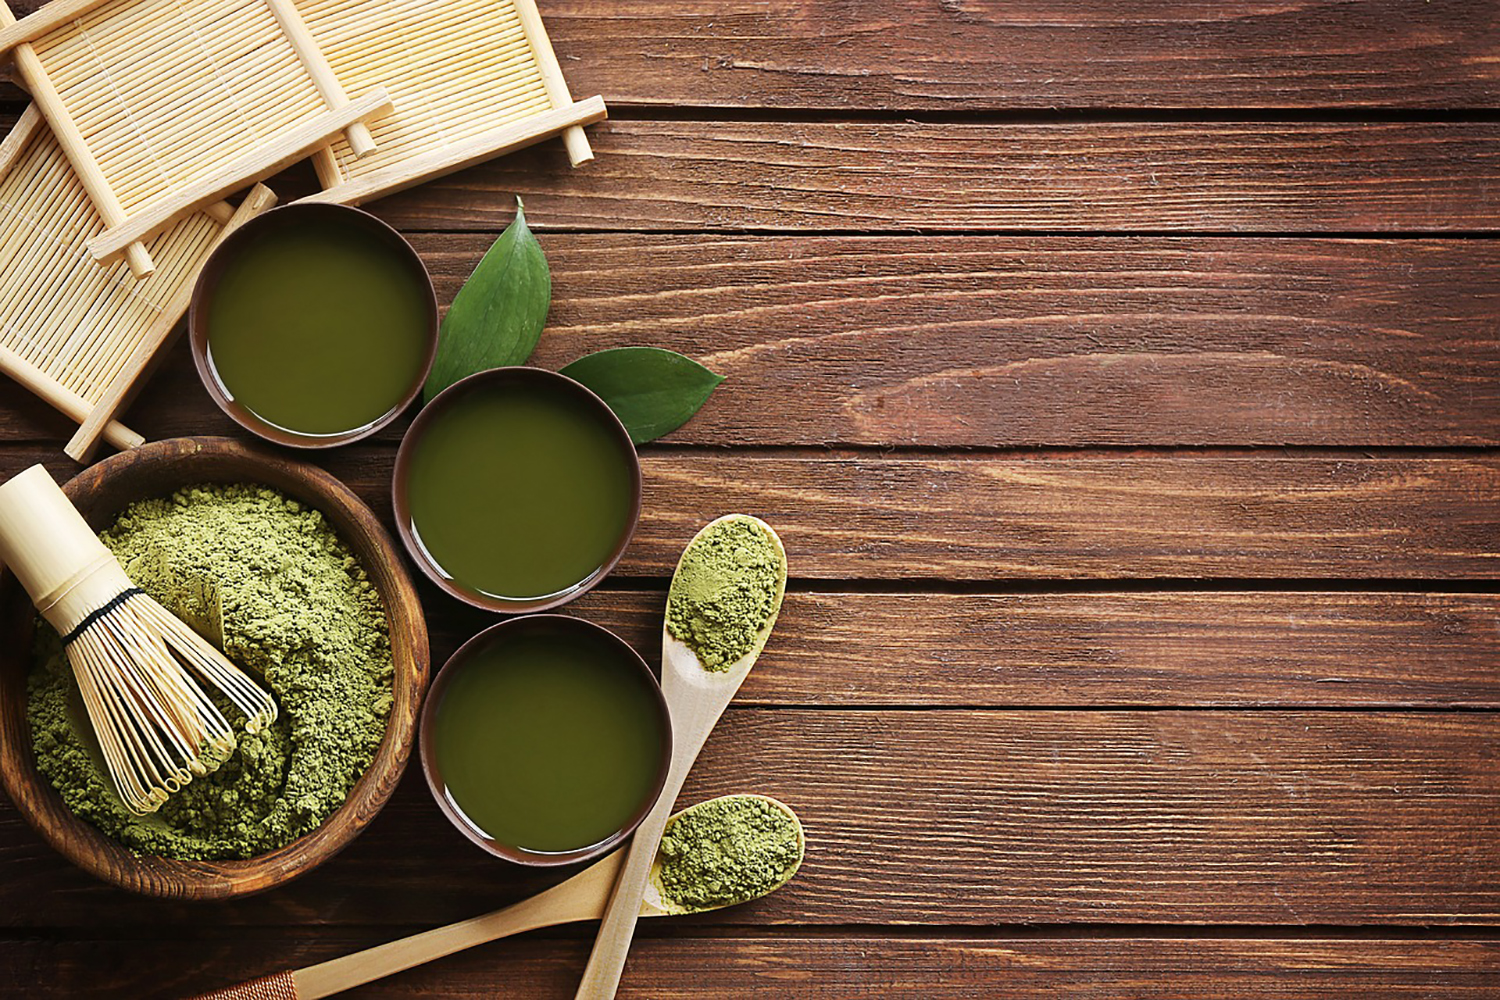 matcha wood background.jpg